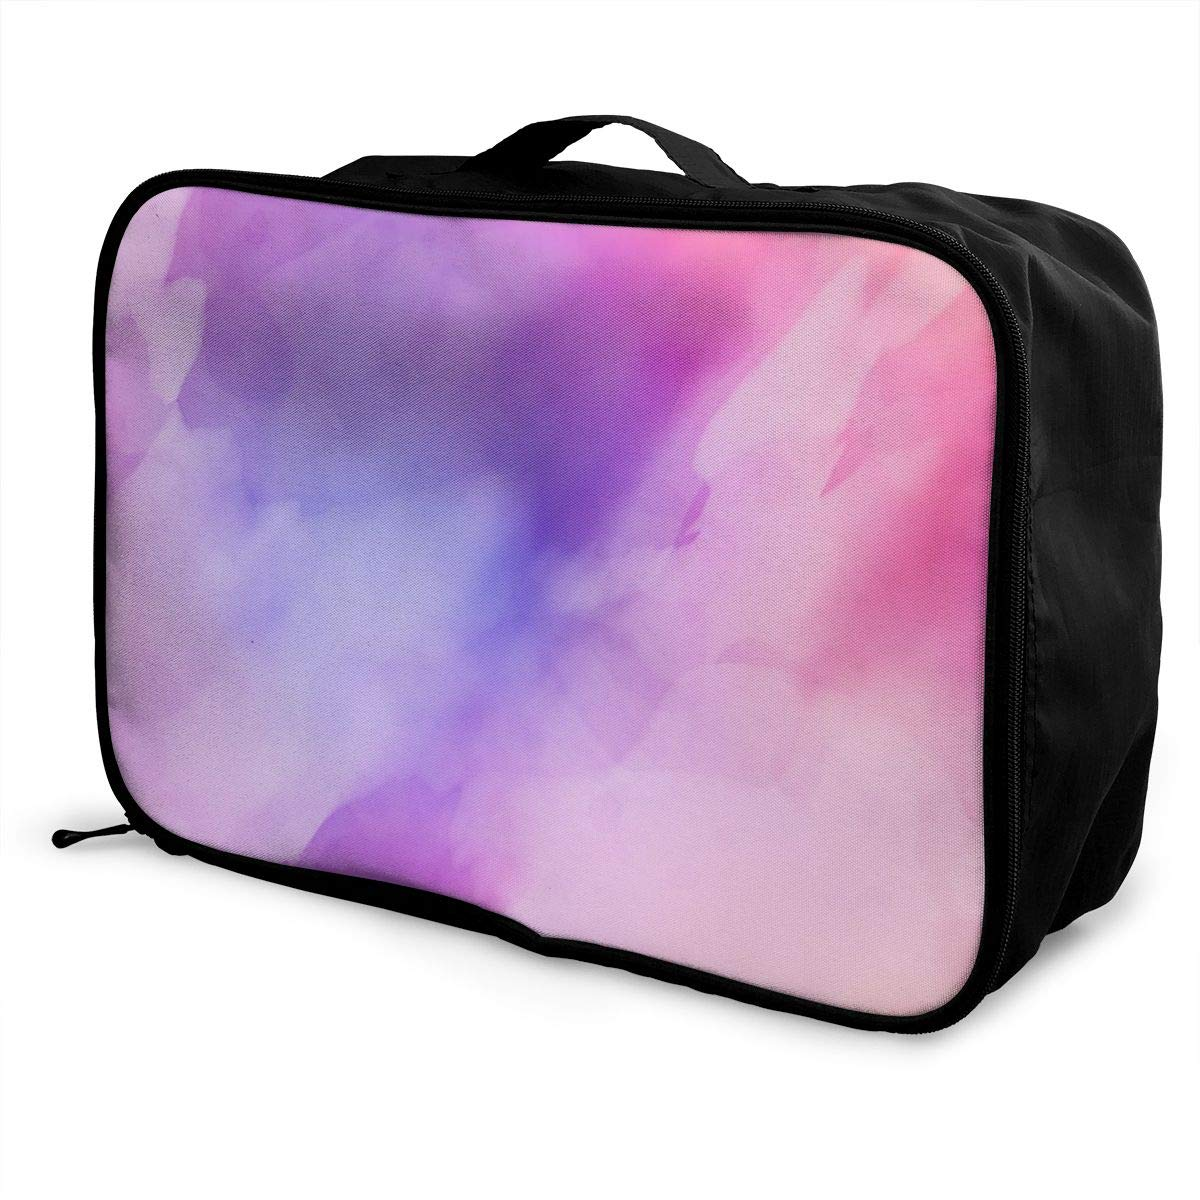 Texture Art Travel Lightweight Waterproof Foldable Storage Carry Luggage Large Capacity Portable Luggage Bag Duffel Bag